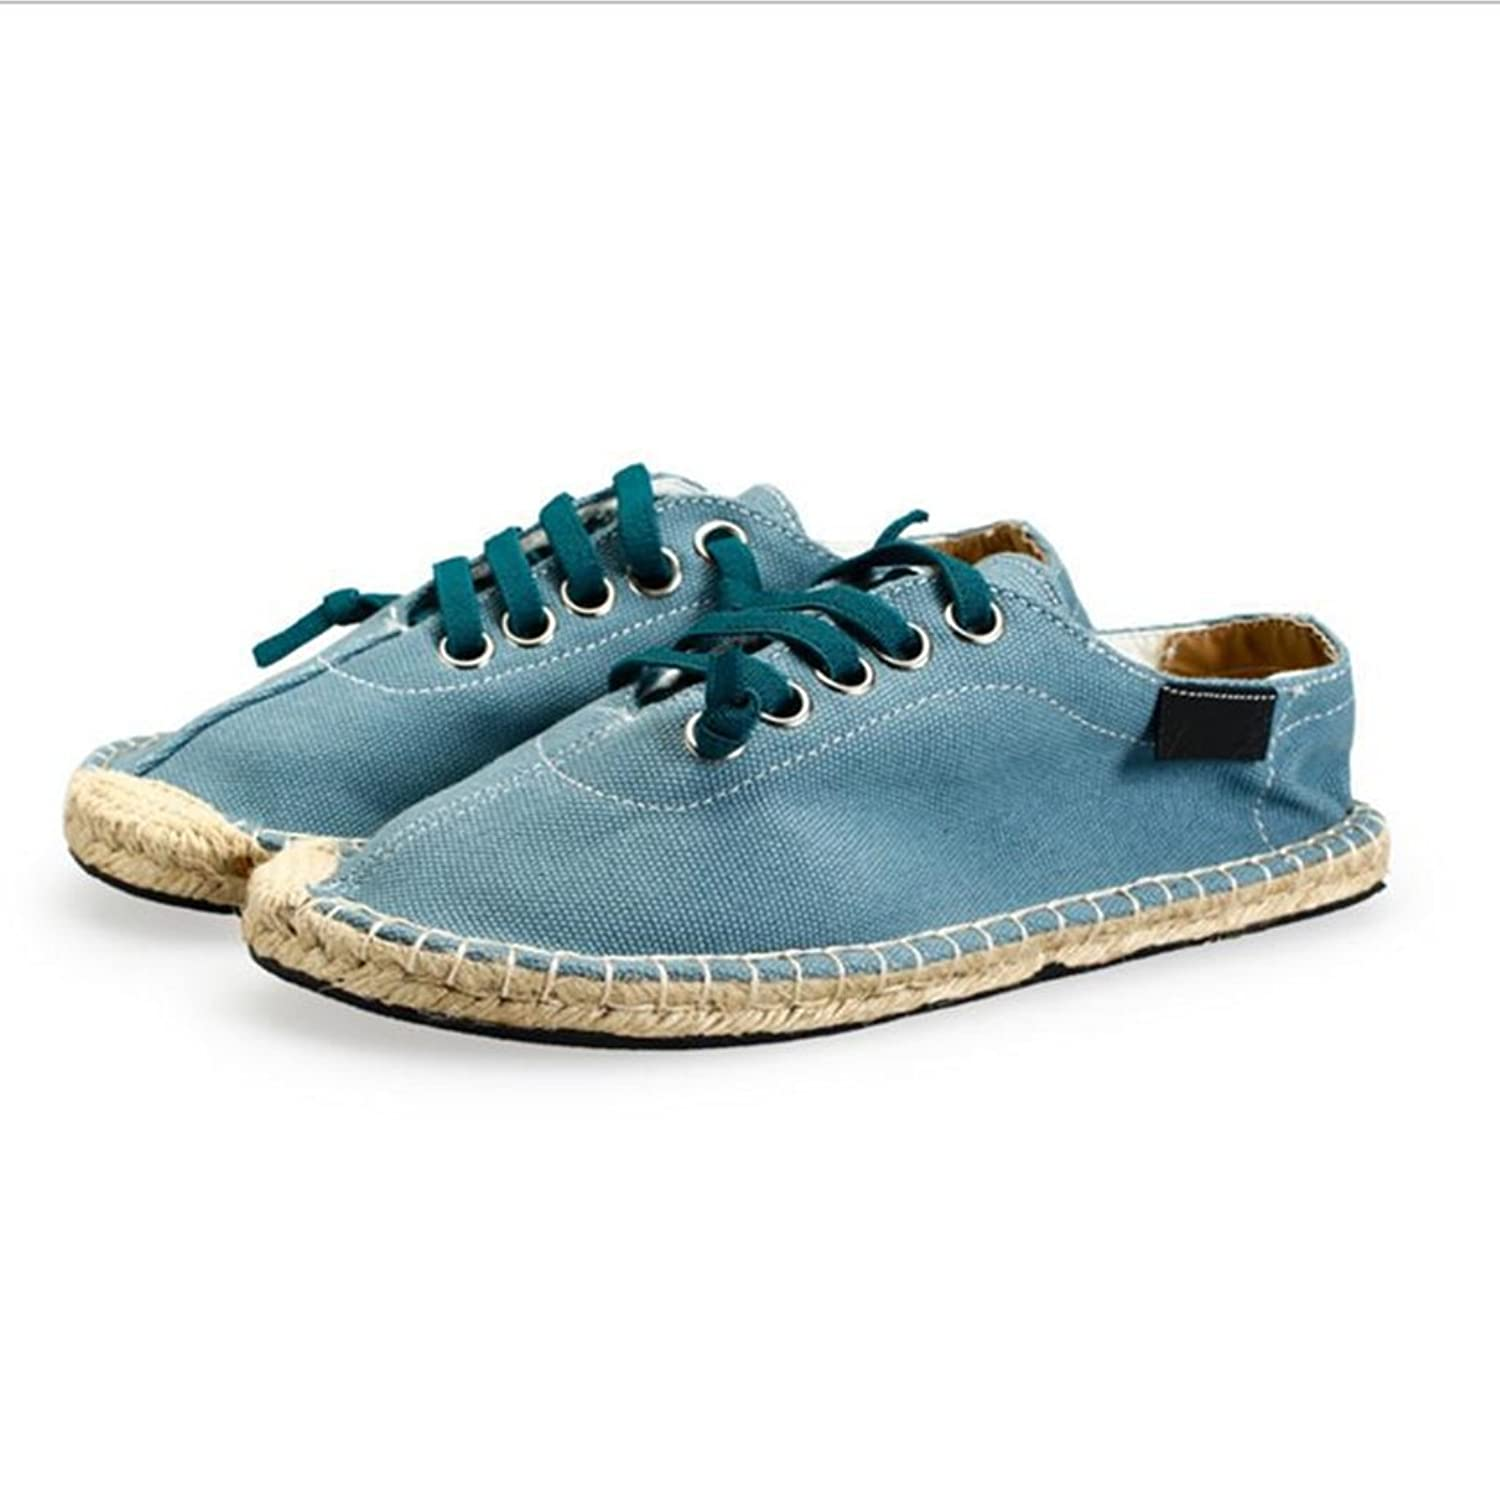 OEM Casual Canvas Shoes Breathable Men's Comfortable Flax Shoes